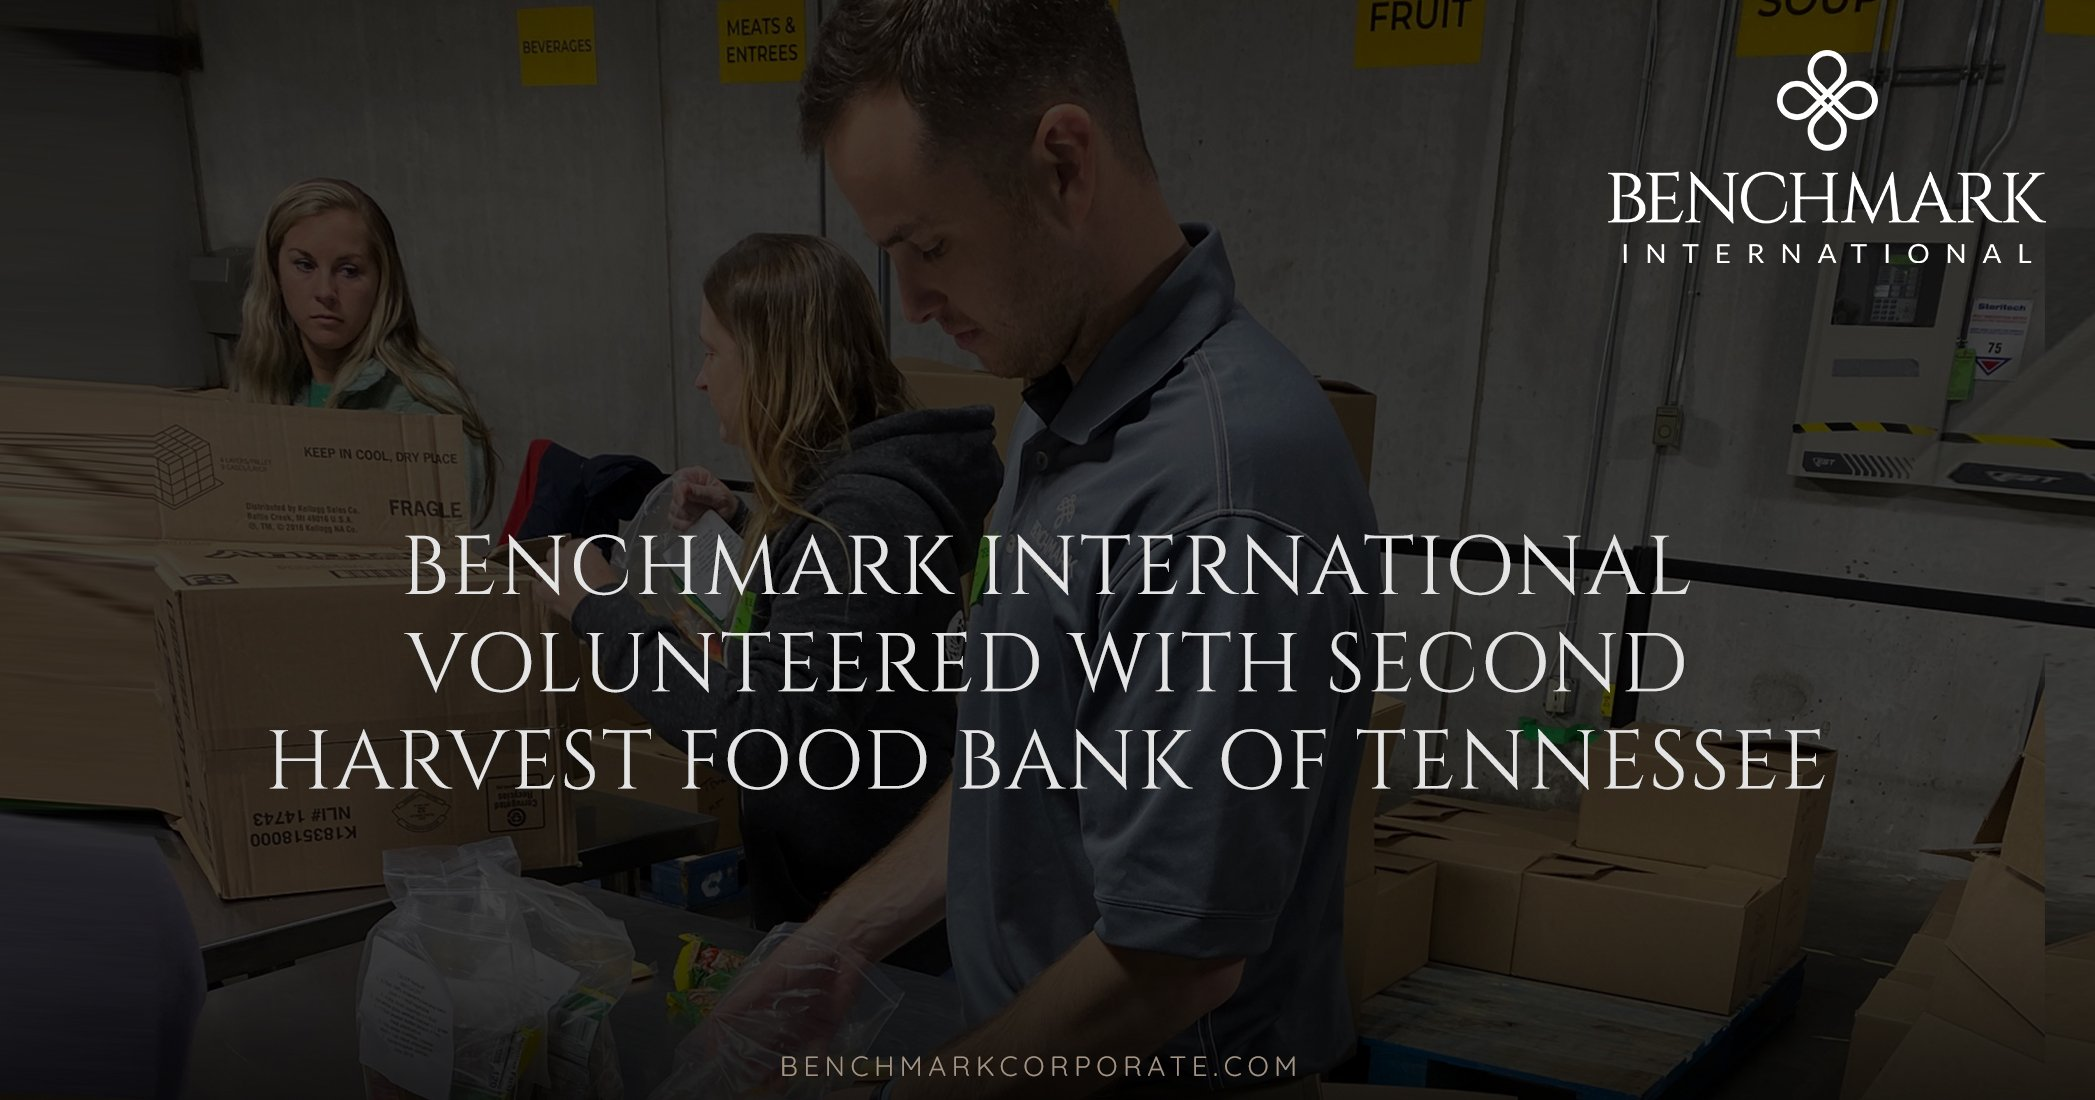 Benchmark International volunteered with Second Harvest Food Bank of Tennessee